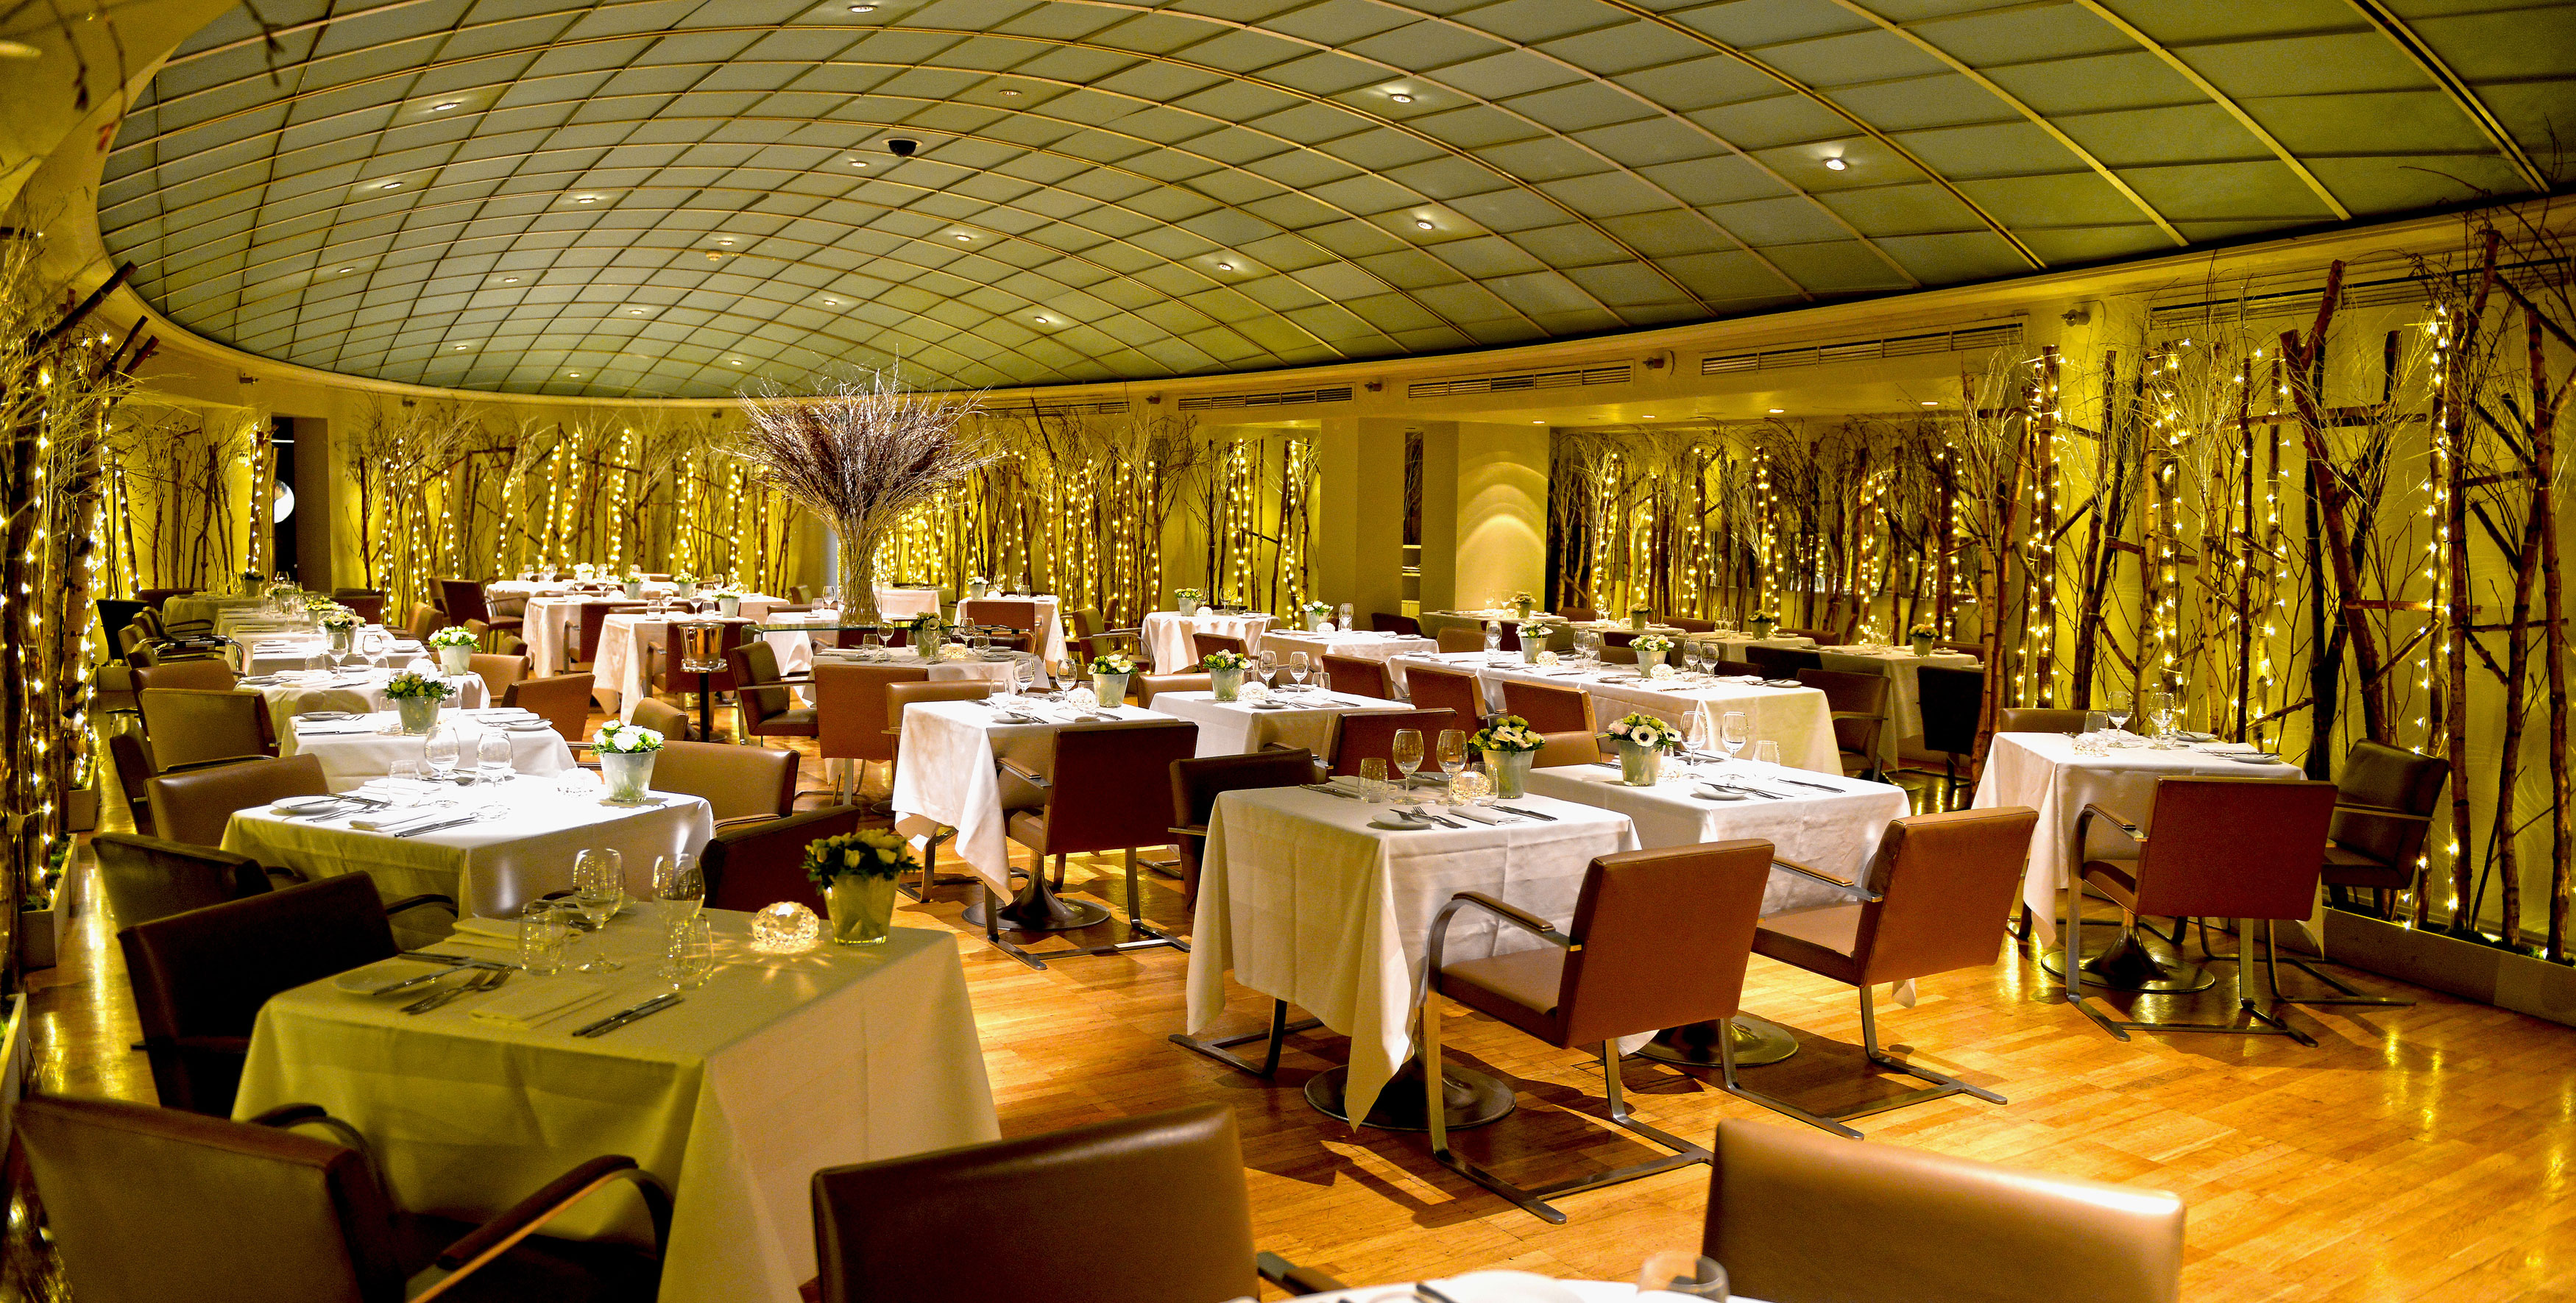 Reserve a table at Harvey Nichols Knightsbridge, Fifth Floor Restaurant and Café